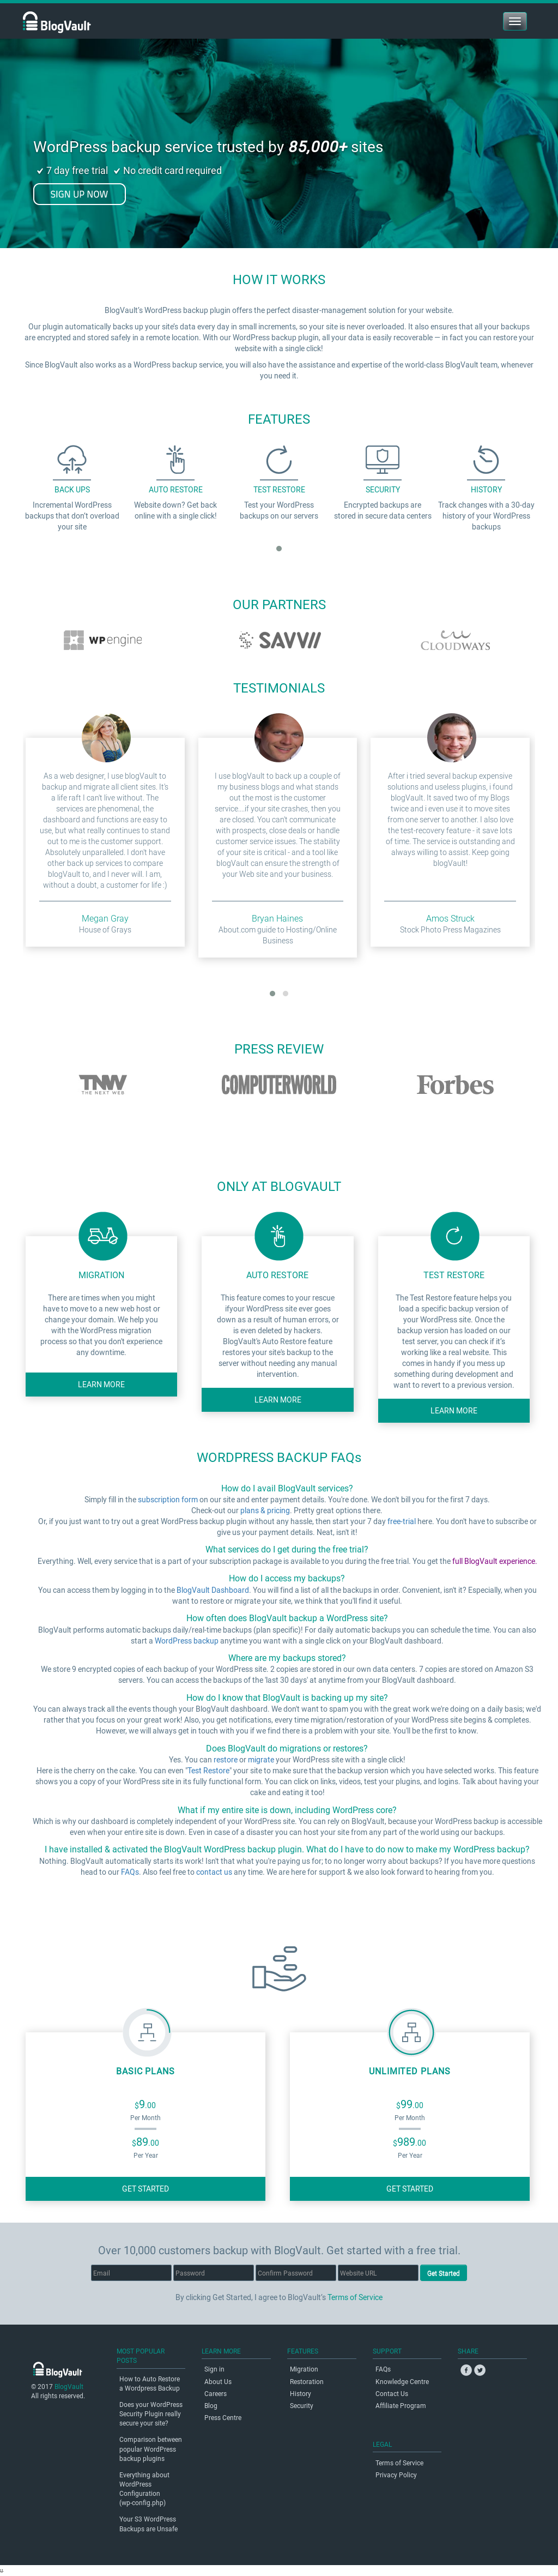 Blogvault Competitors, Revenue and Employees - Owler Company Profile